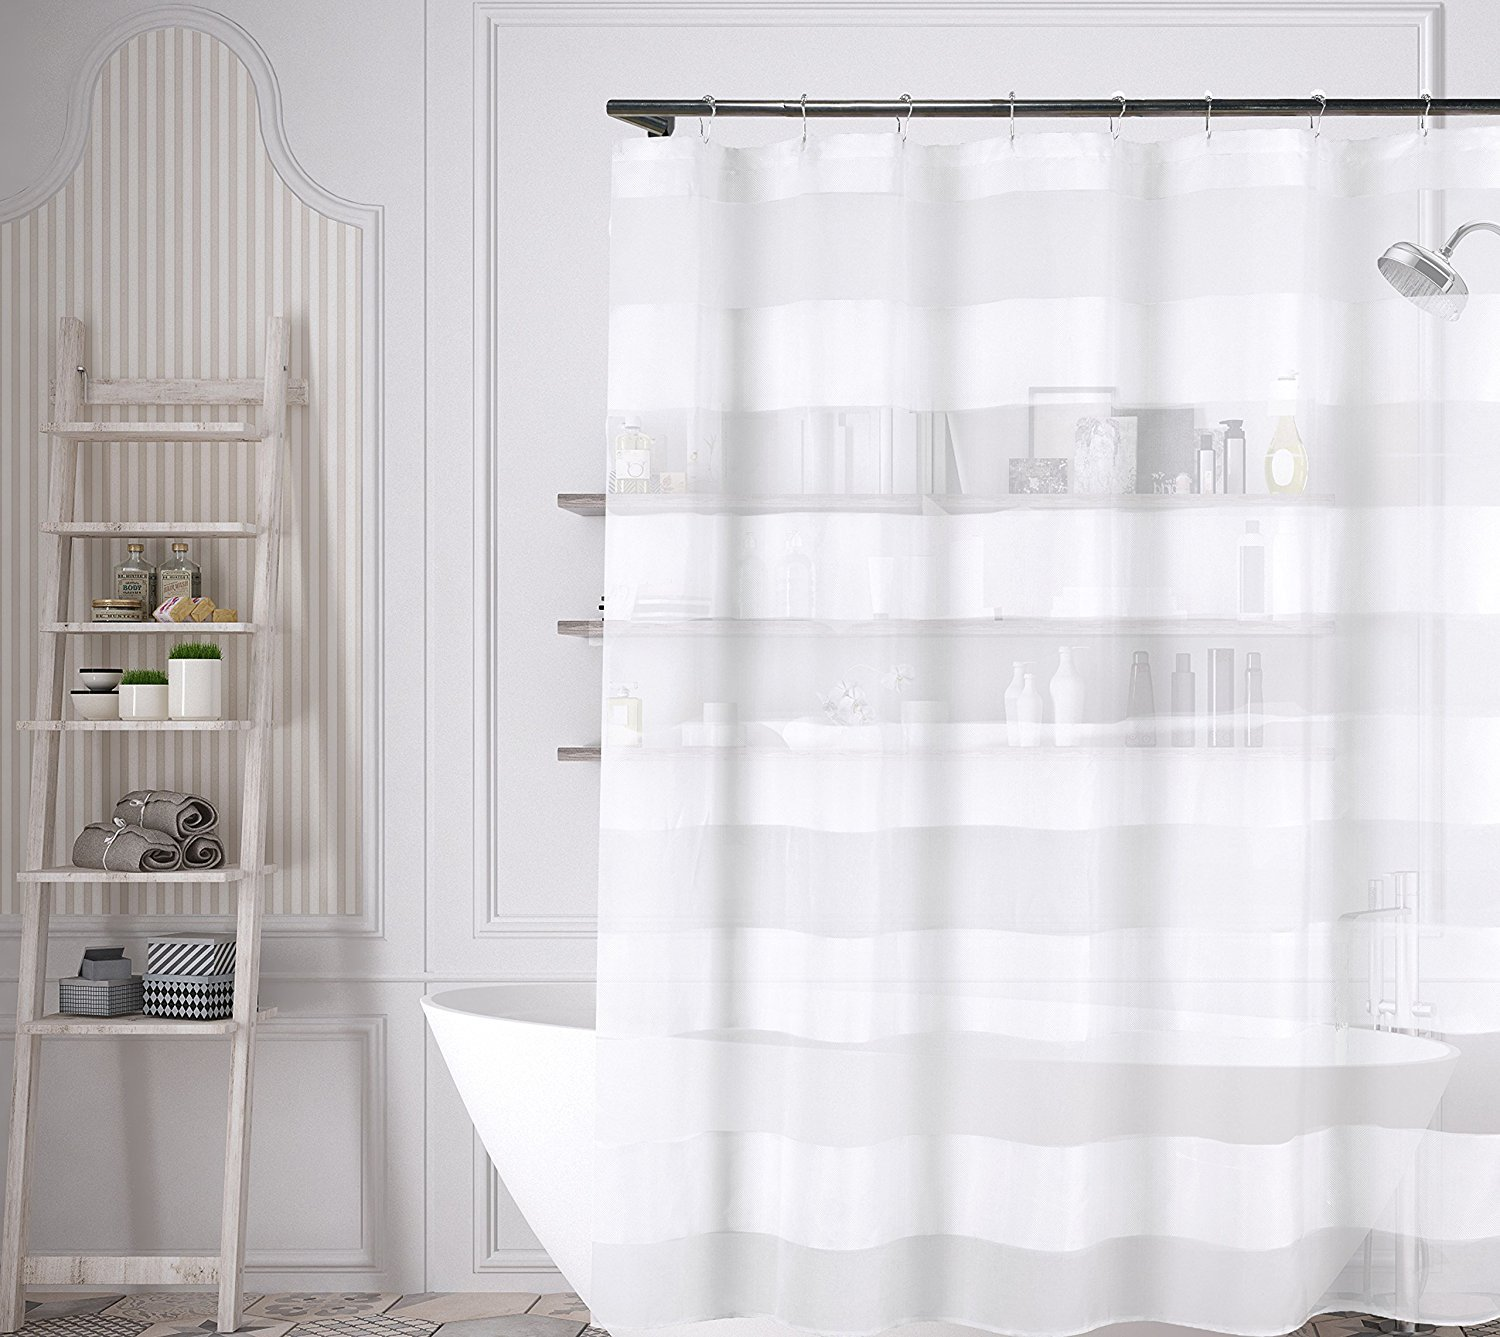 bath black seaglass x available products pewter stripe prod white mocha popular p wid waffle spin in ivory curtains hei shower qlt curtain